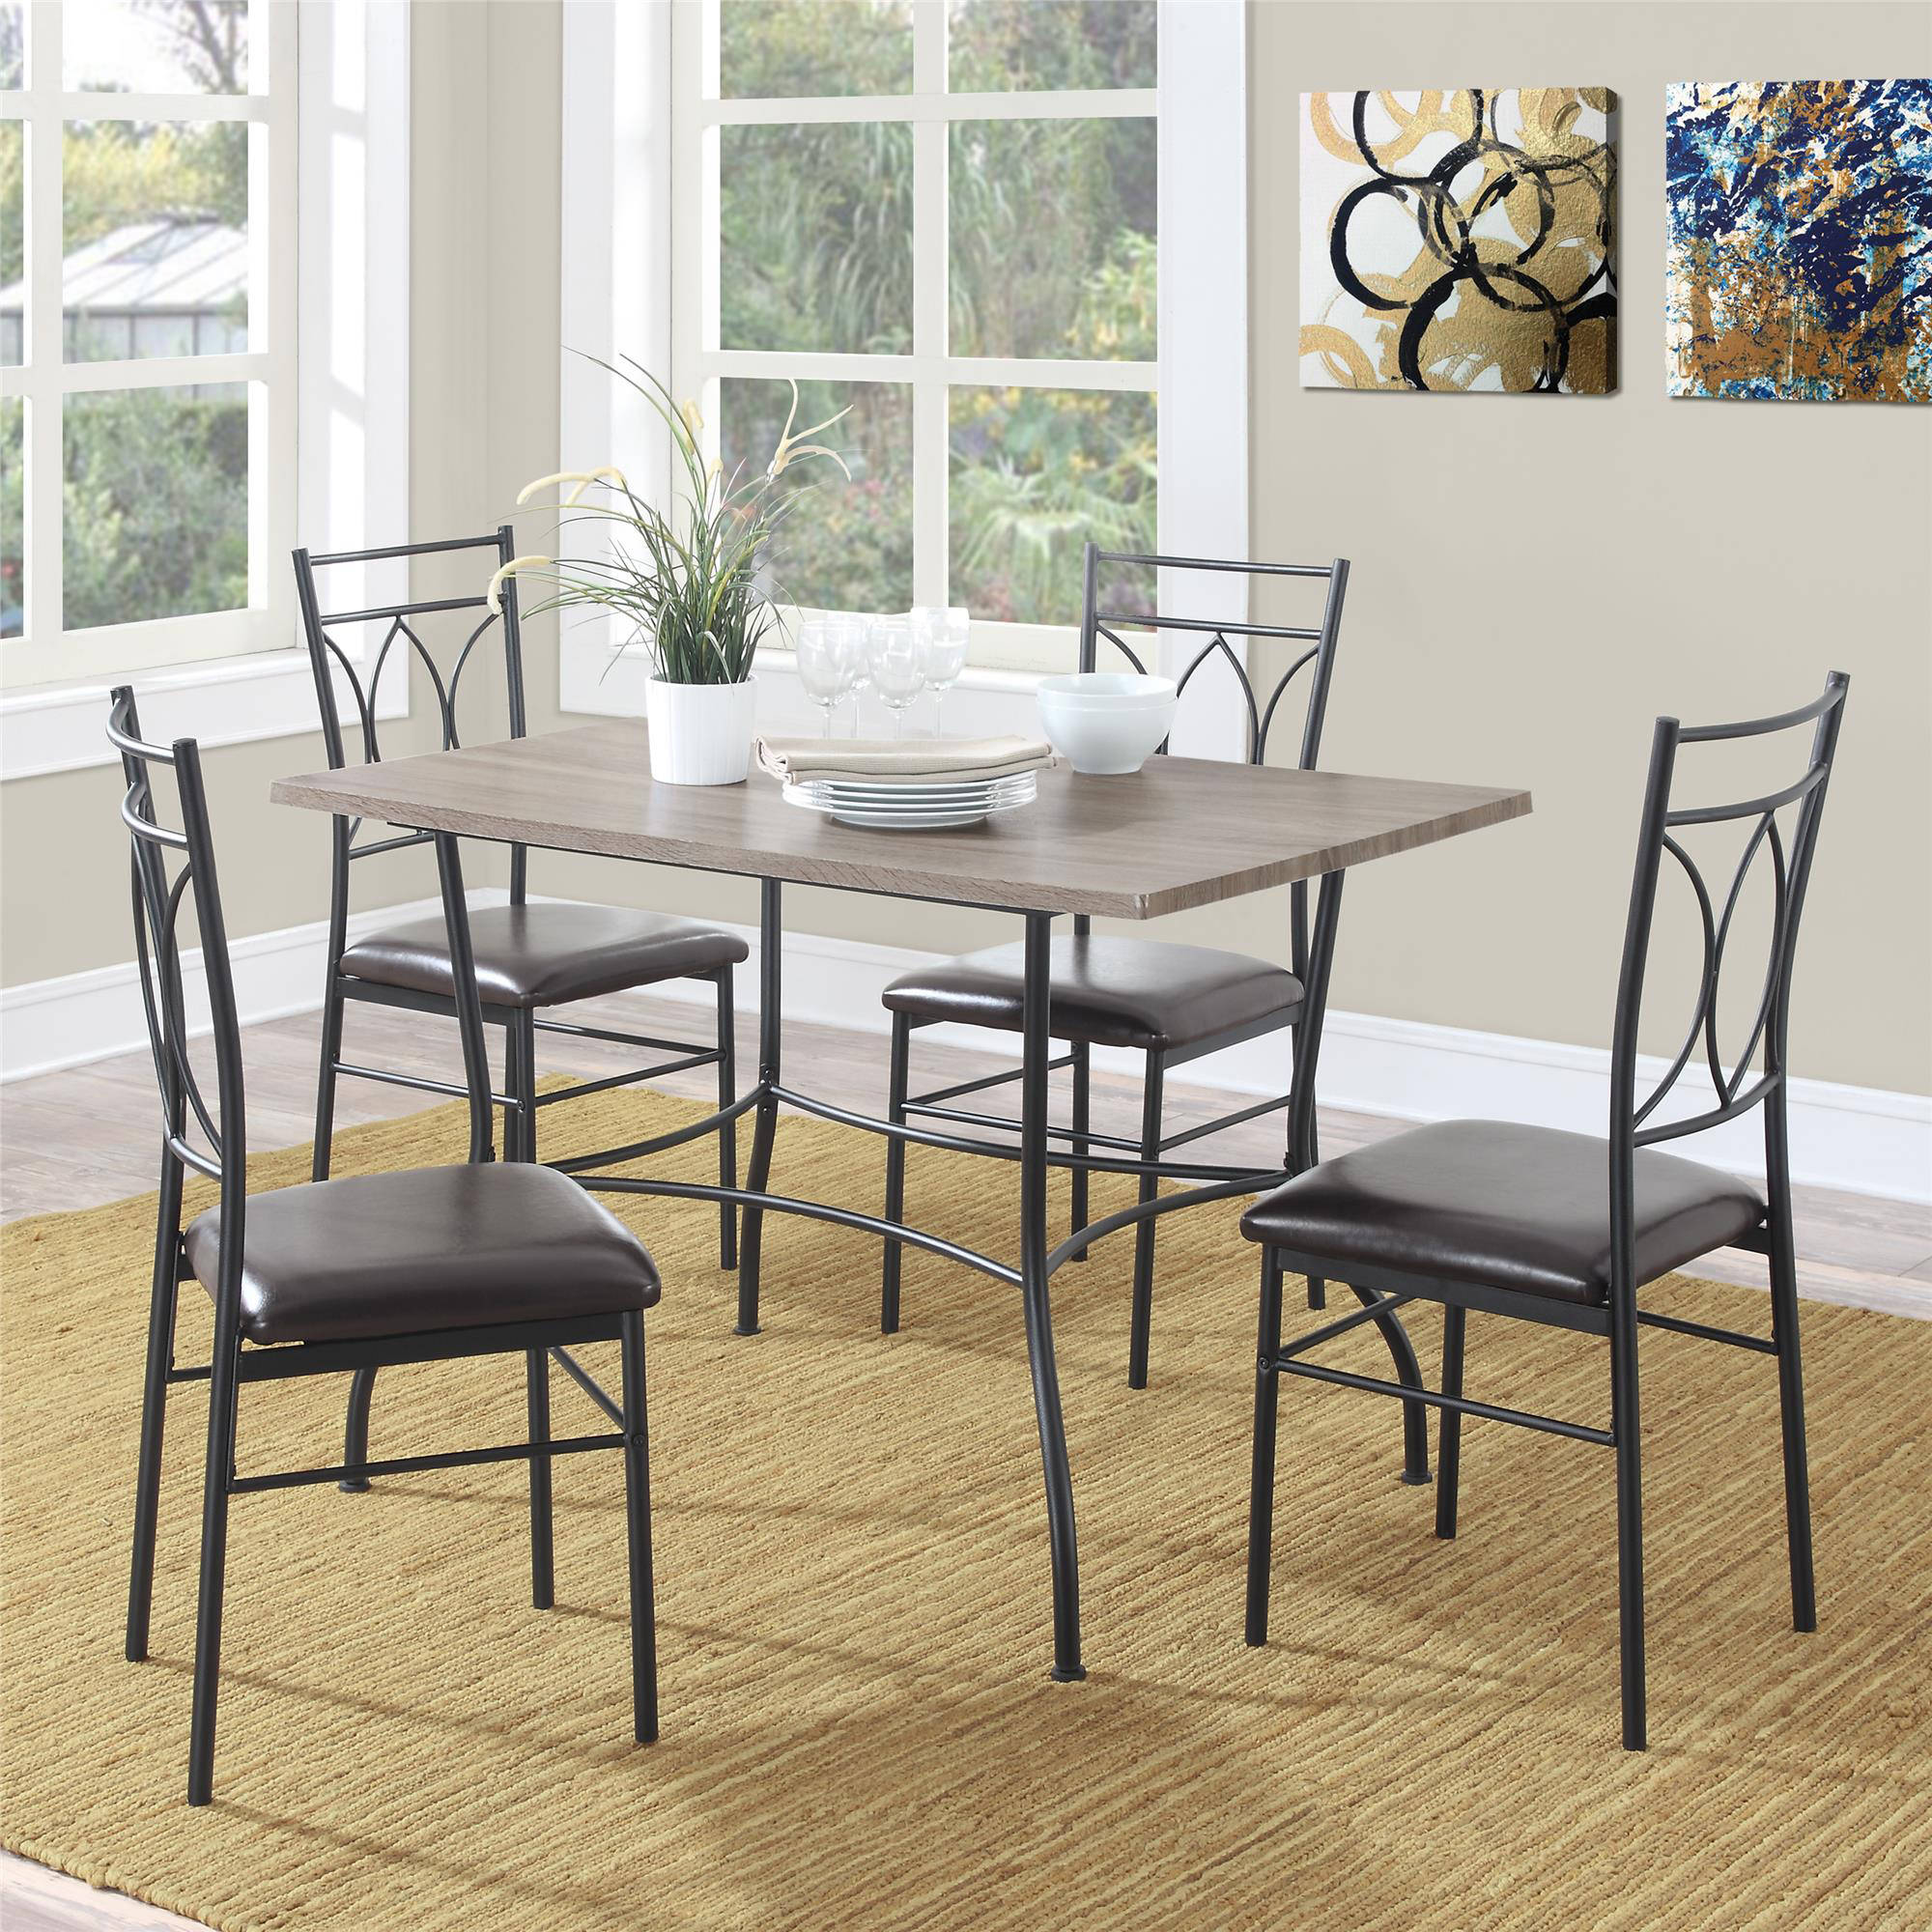 Dorel Living Shelby 5 Piece Rustic Wood And Metal Dining Set   Walmart.com